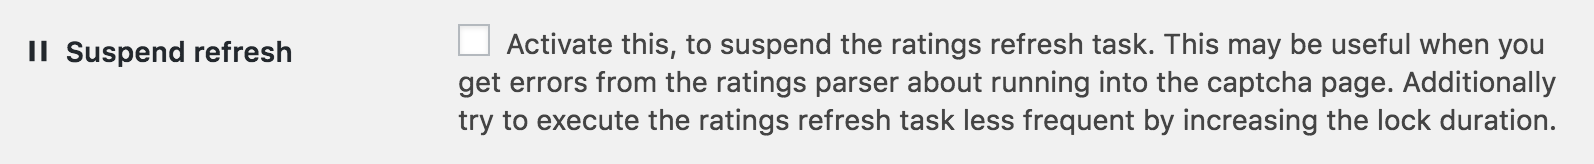 ASA 2 advanced ratings handling suspend refresh